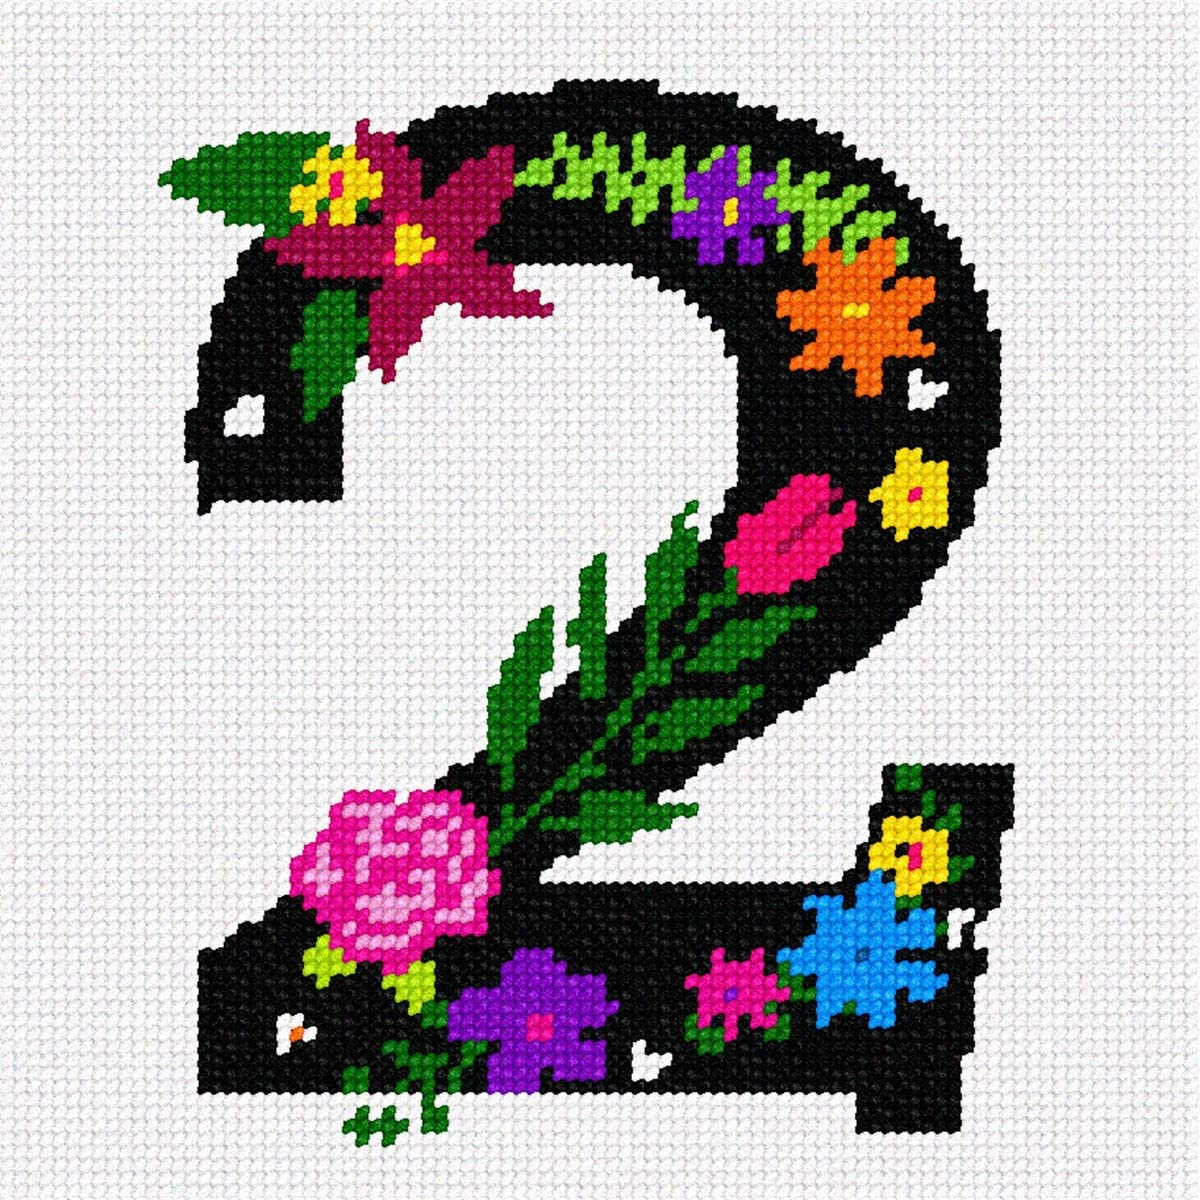 pepita Number Two Primary Floral Needlepoint Kit